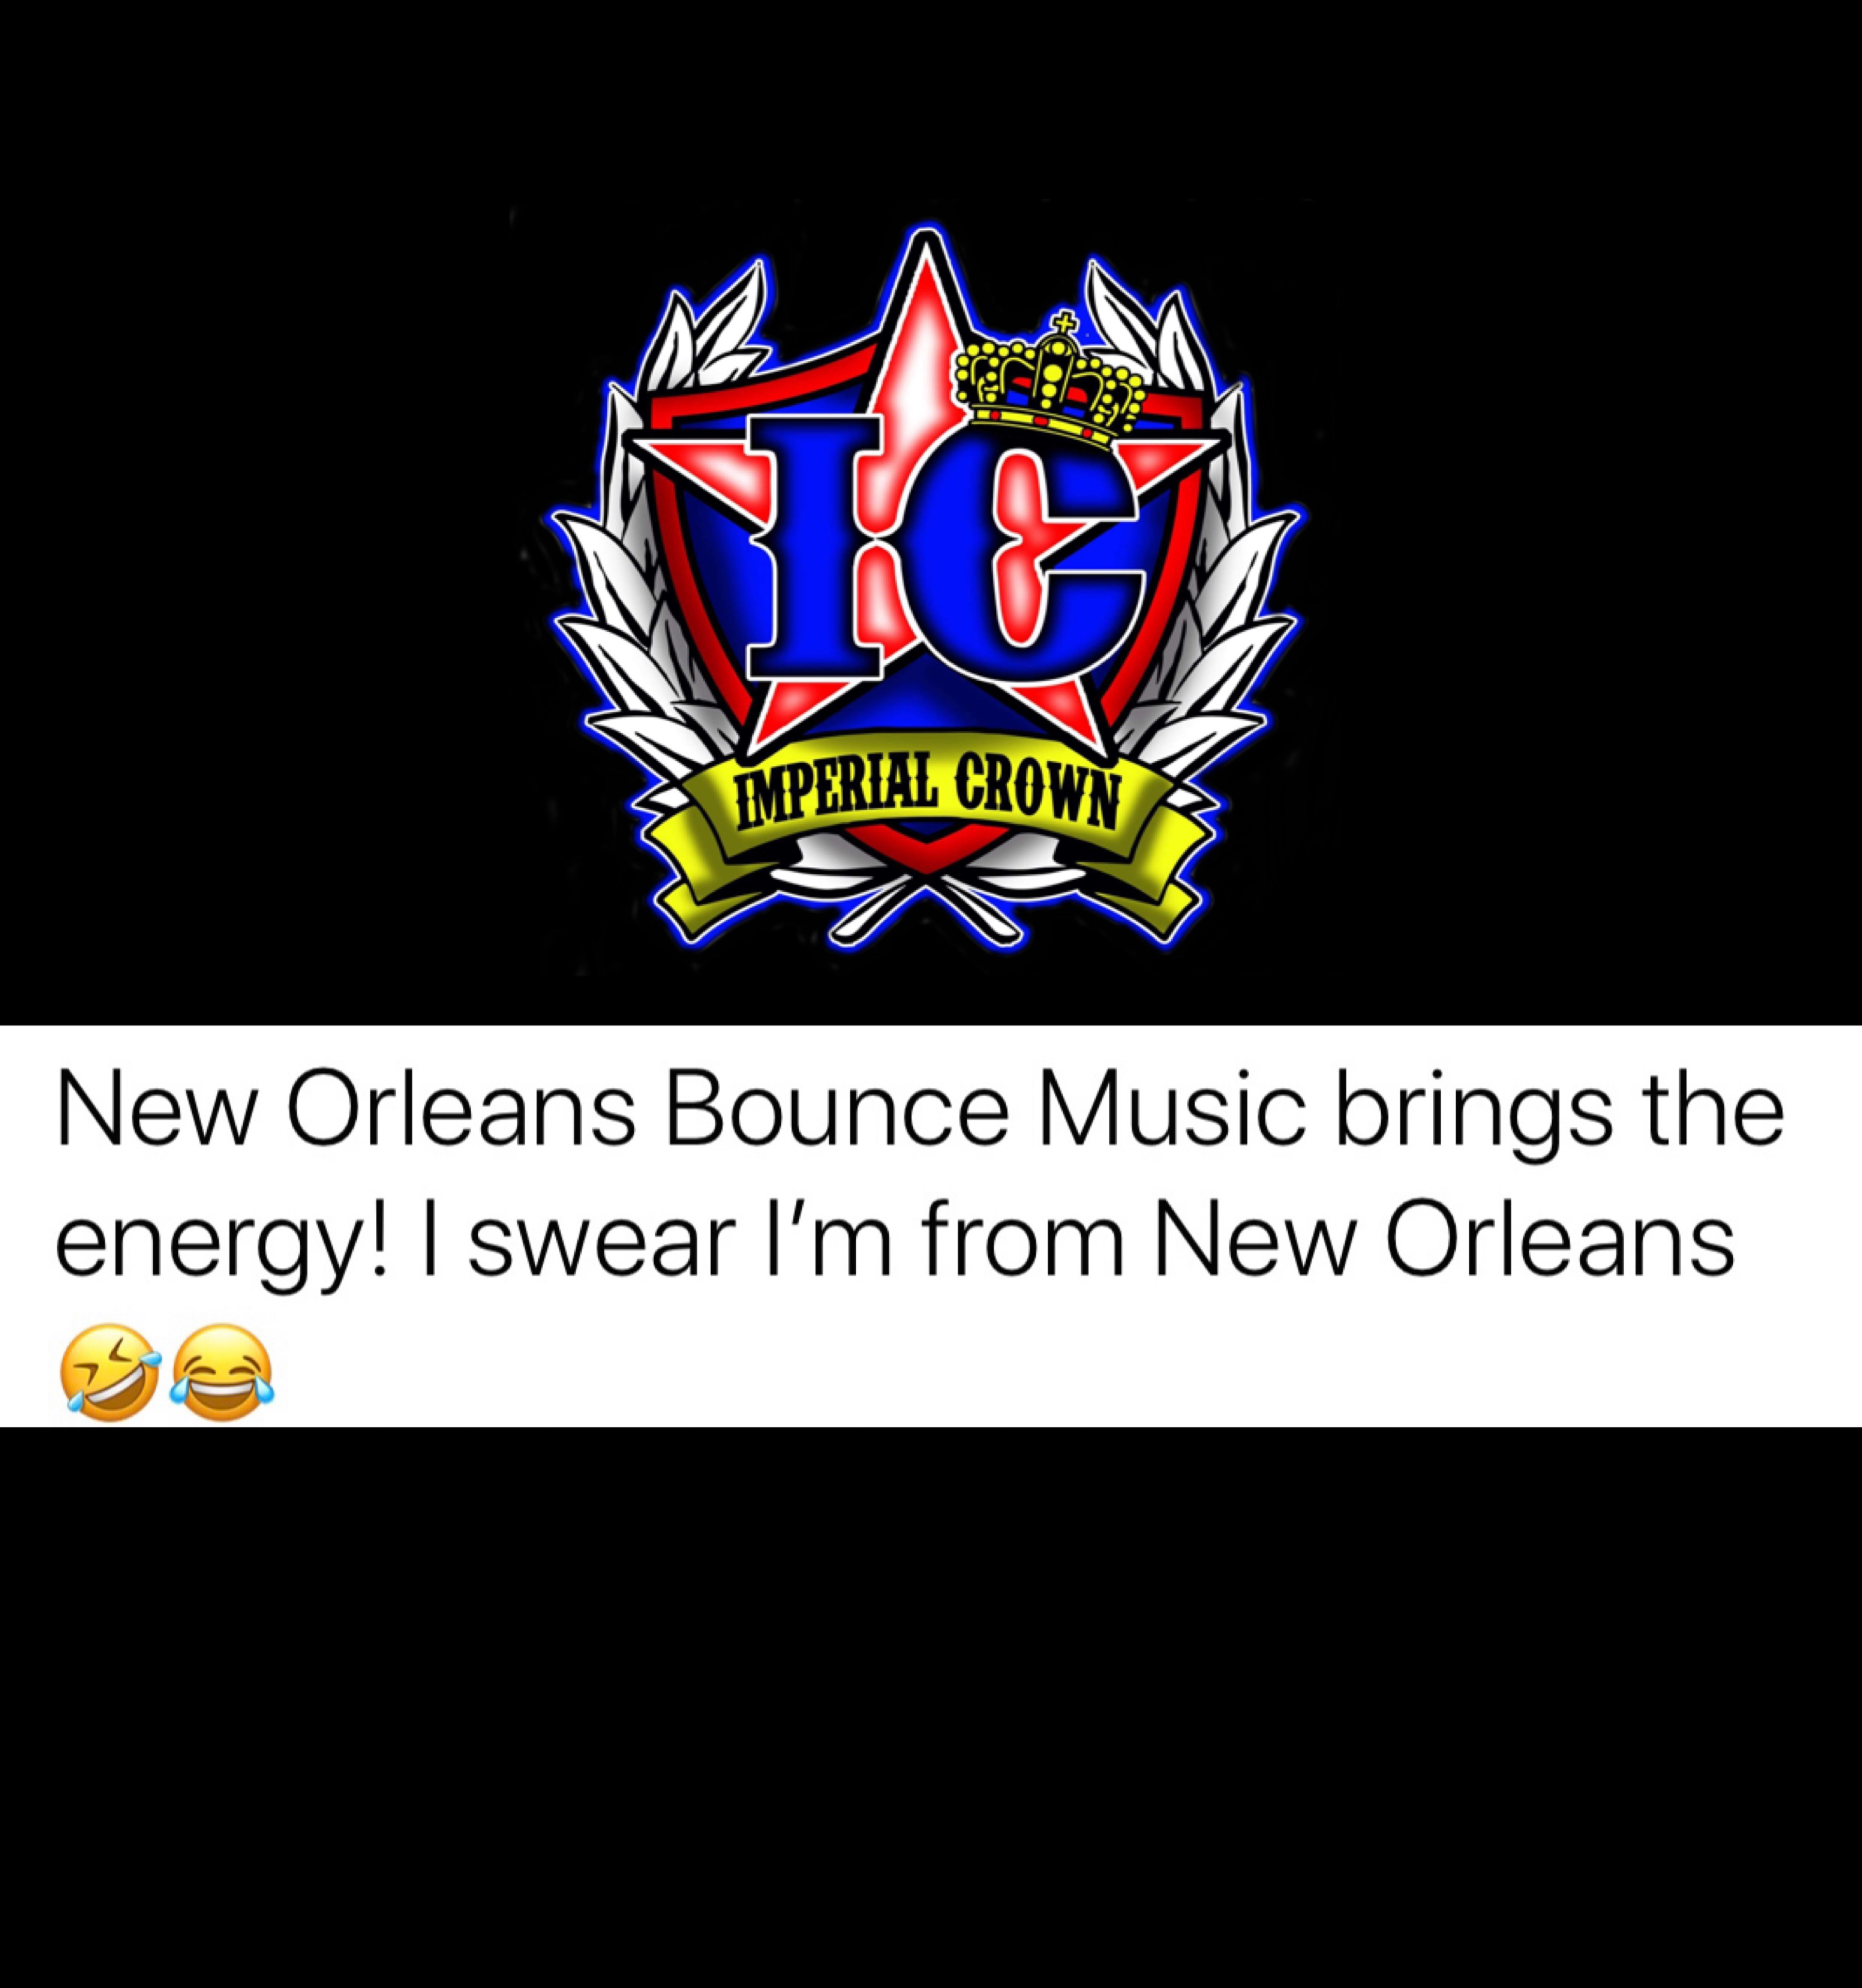 New Orleans bounce music brings the energy